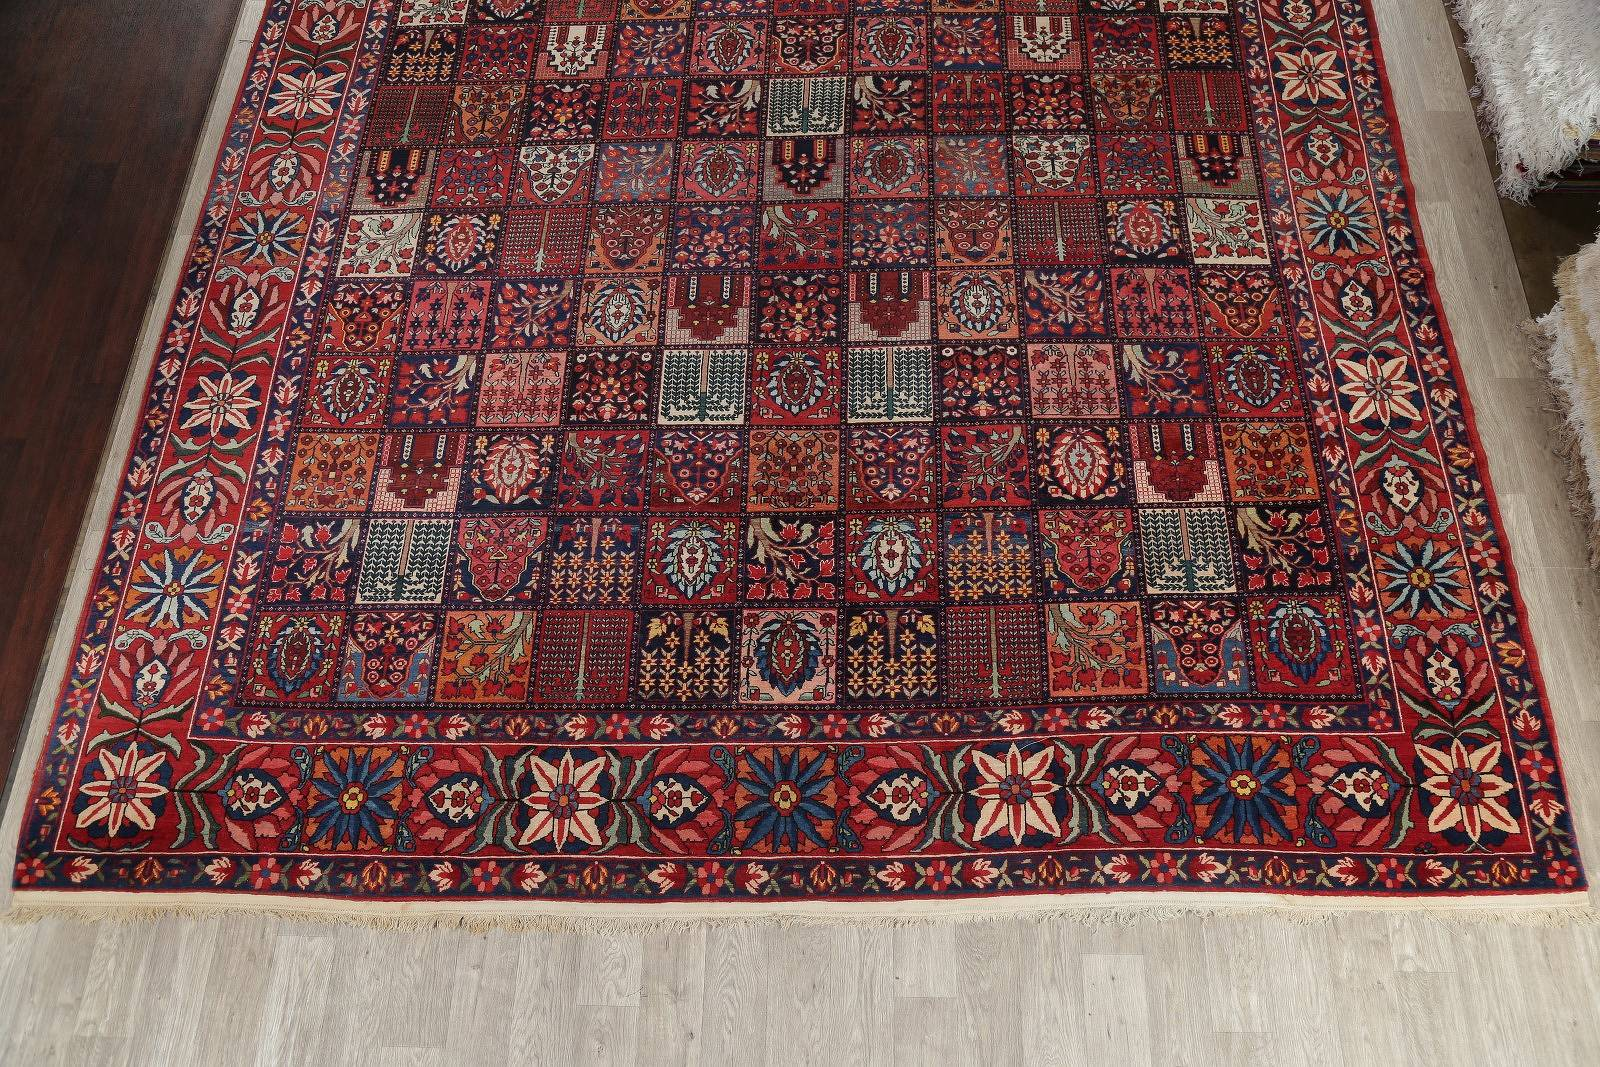 Vegetable Dye Antique Garden Design Bakhtiari Persian Handmade 12x17 Wool Rug